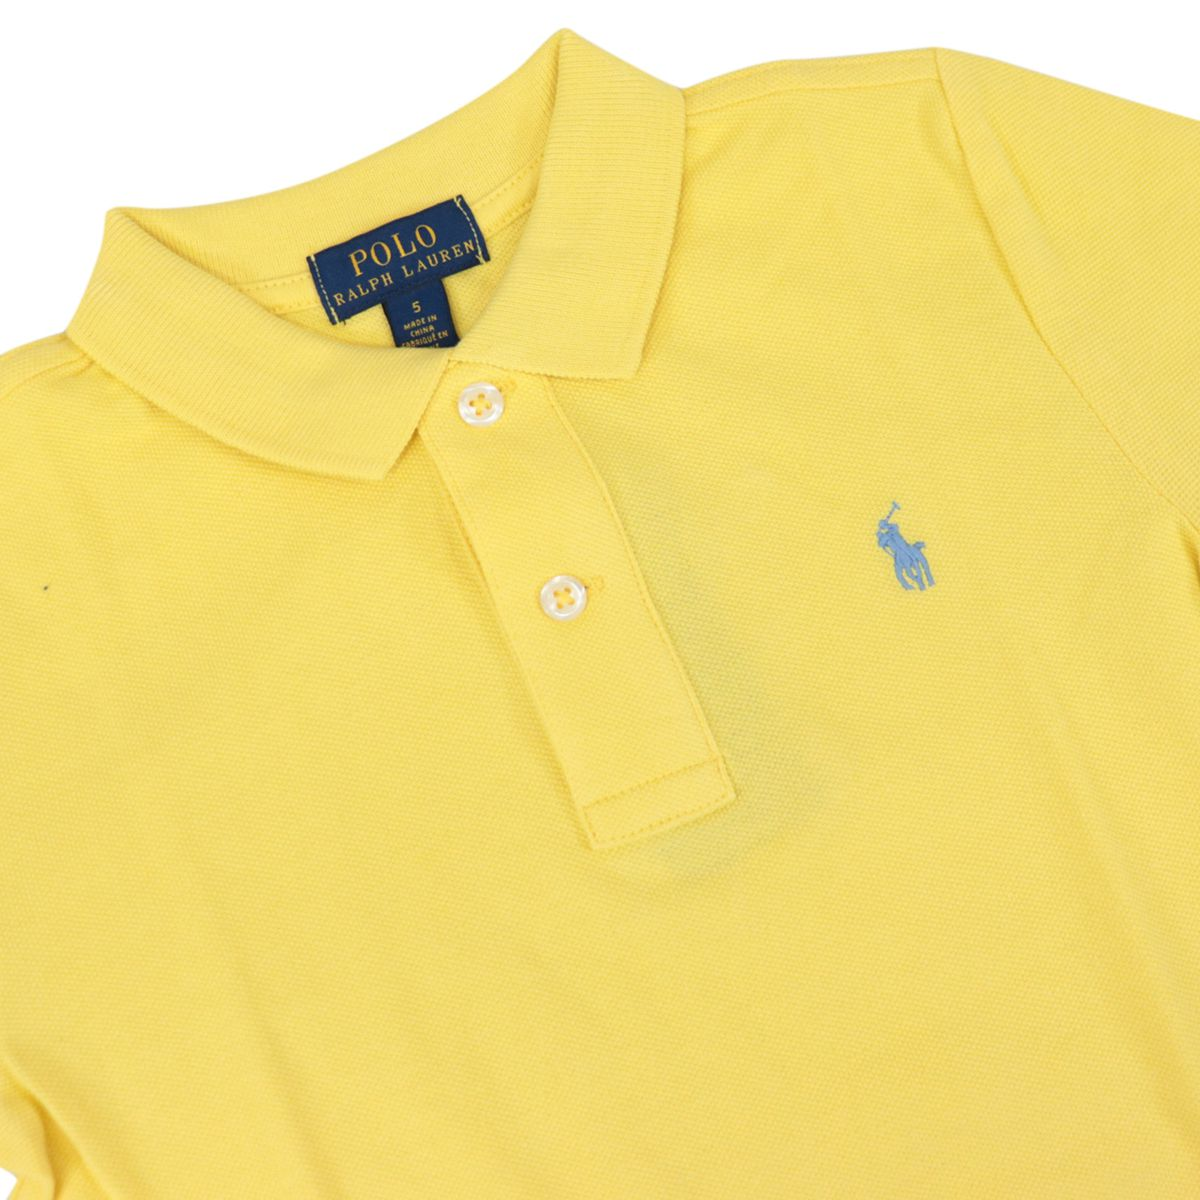 Two-button cotton polo shirt with contrasting embroidered logo Yellow Polo Ralph Lauren